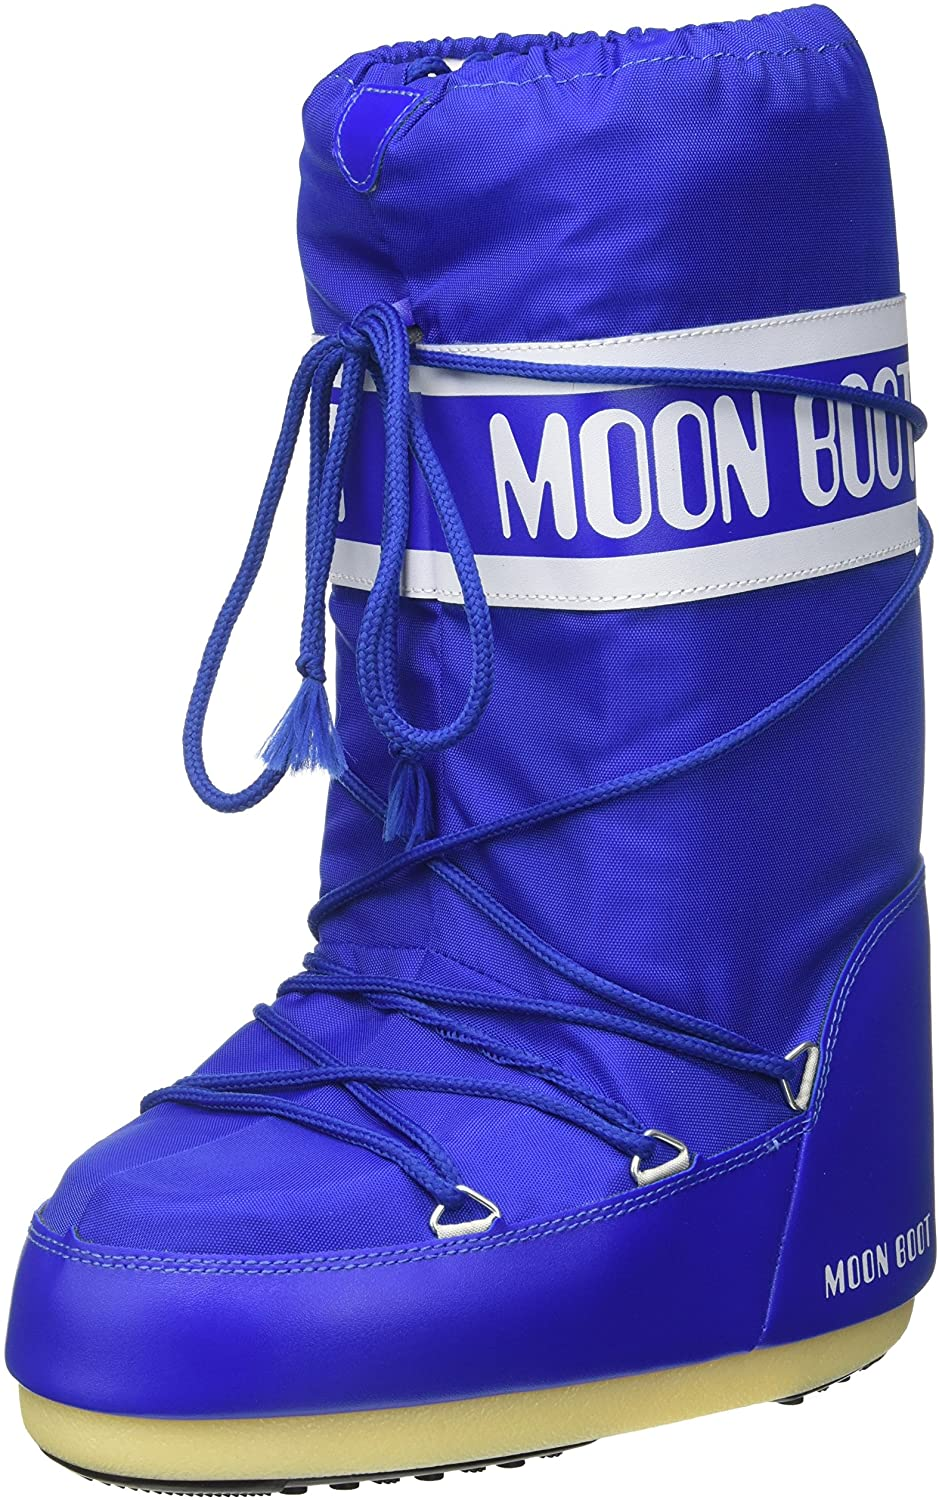 Moon-boot Unisex Adults' 140044 00 Snow